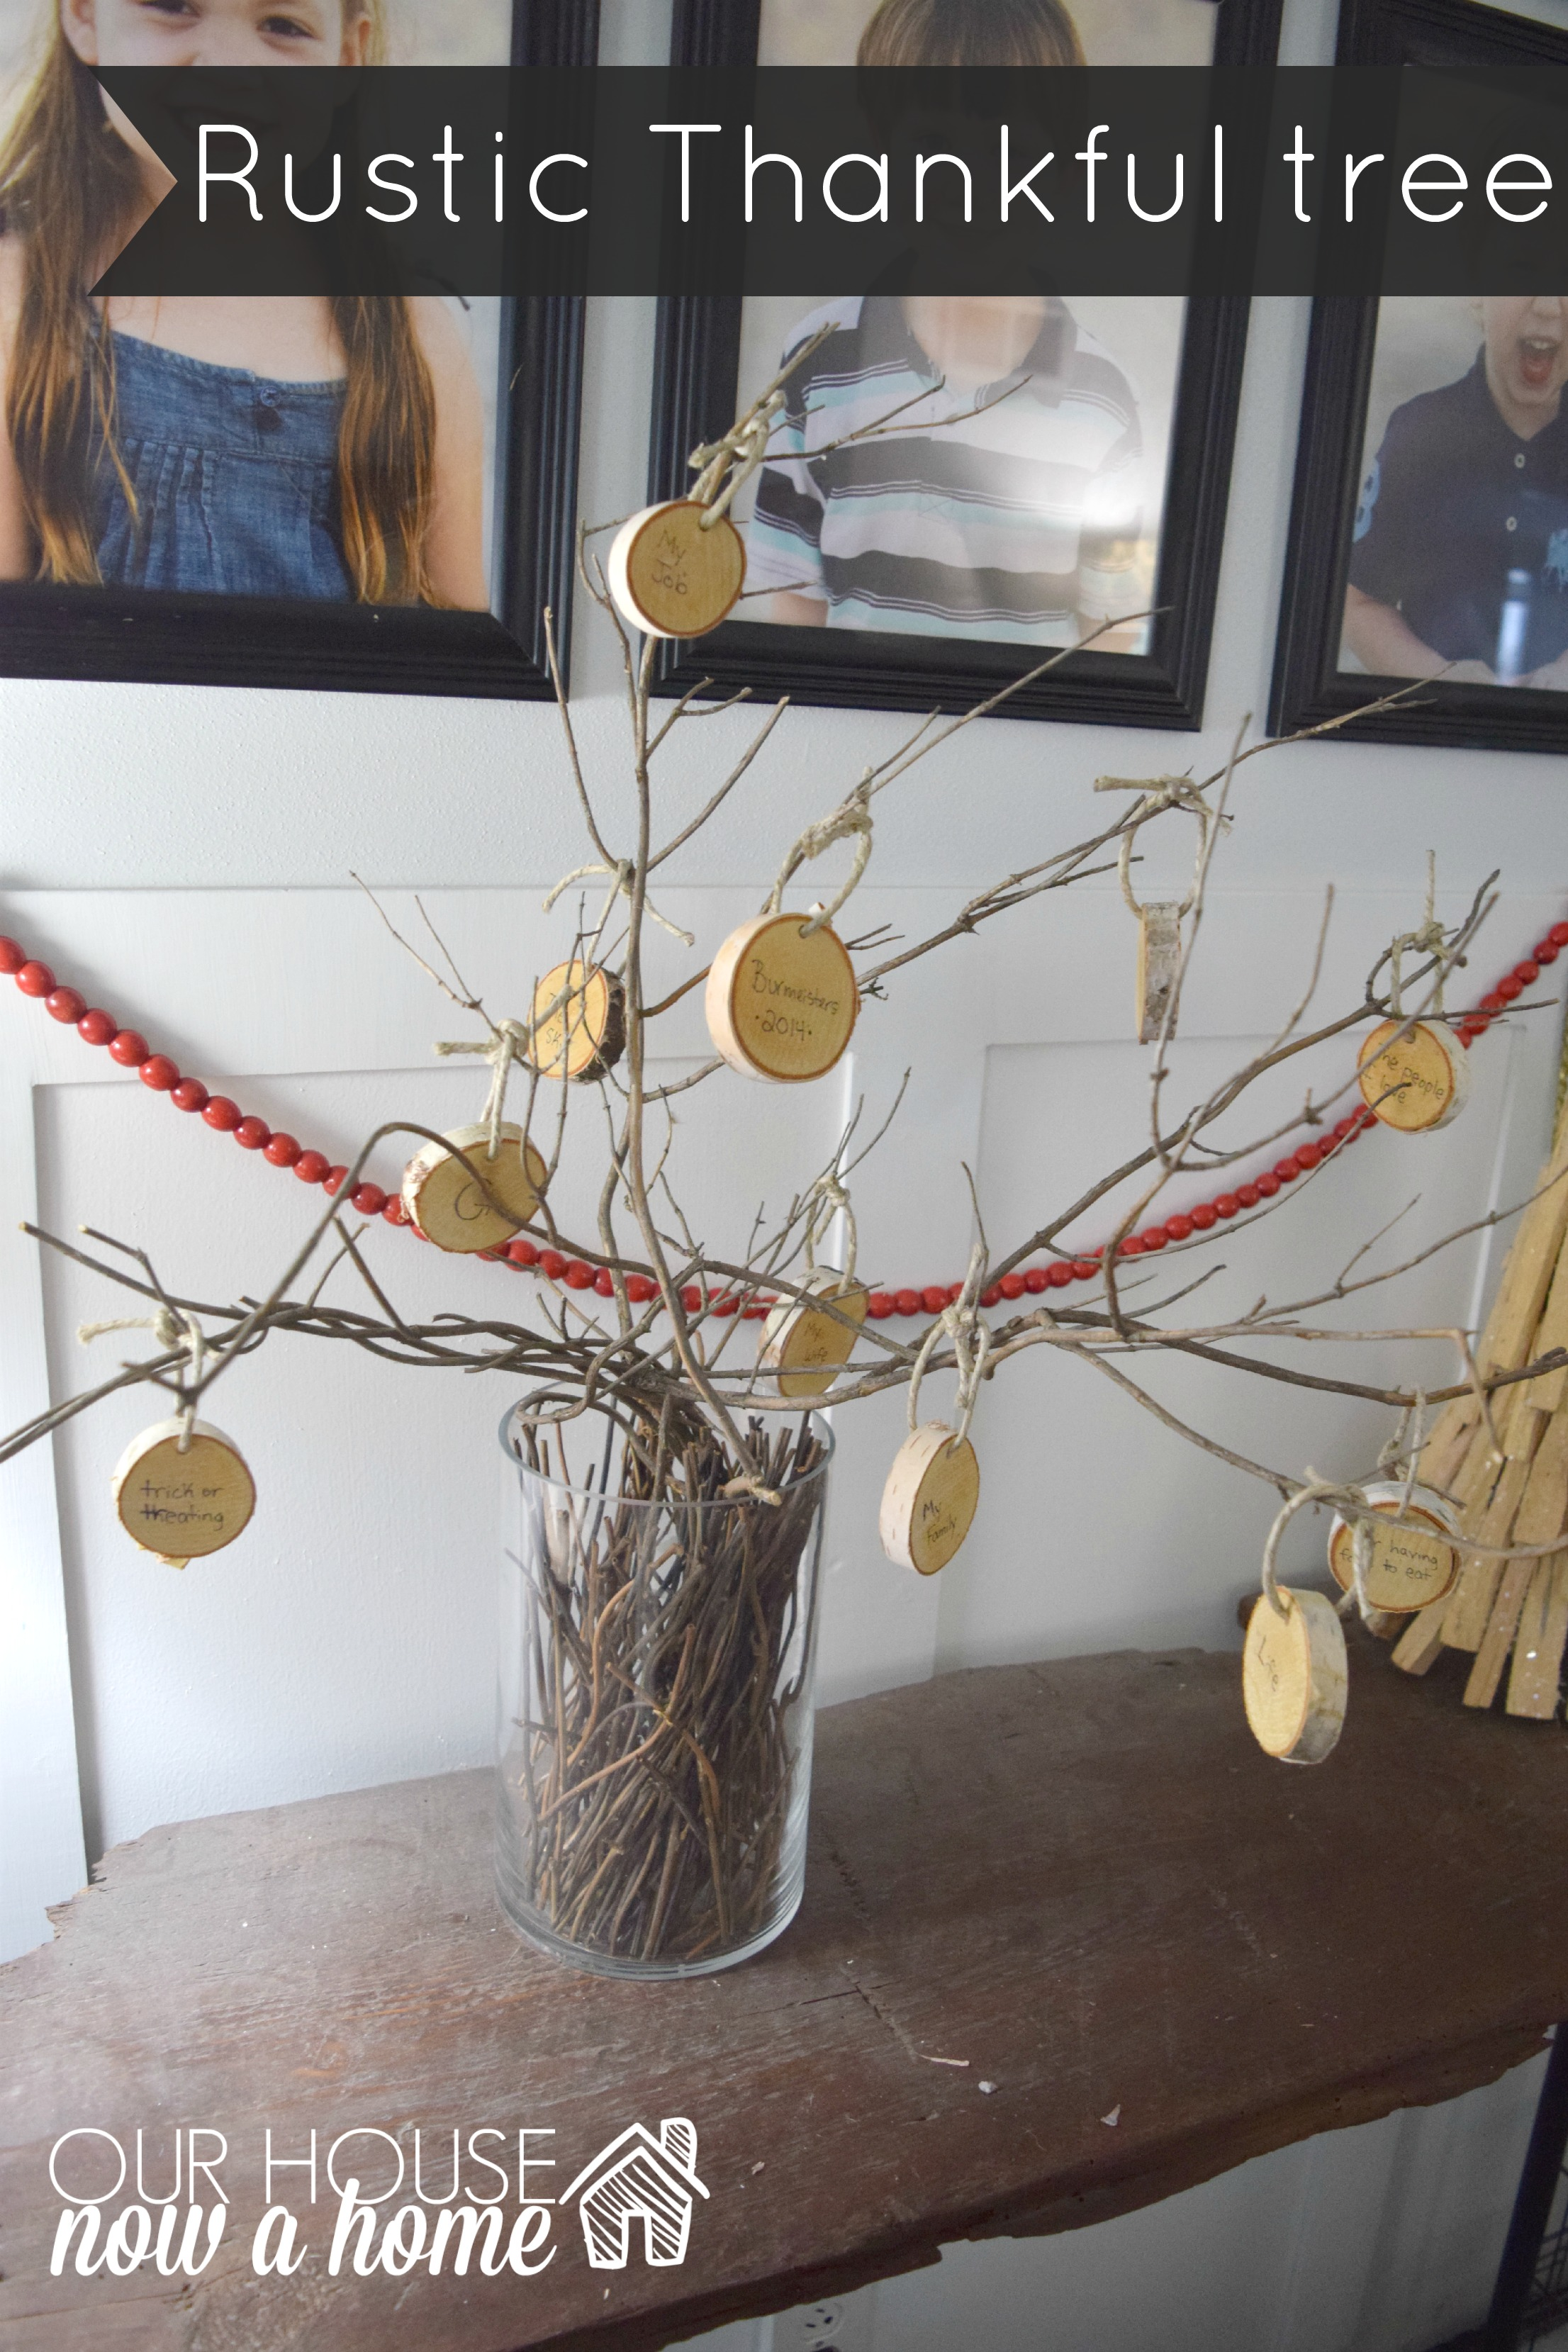 Family rustic Thankful tree